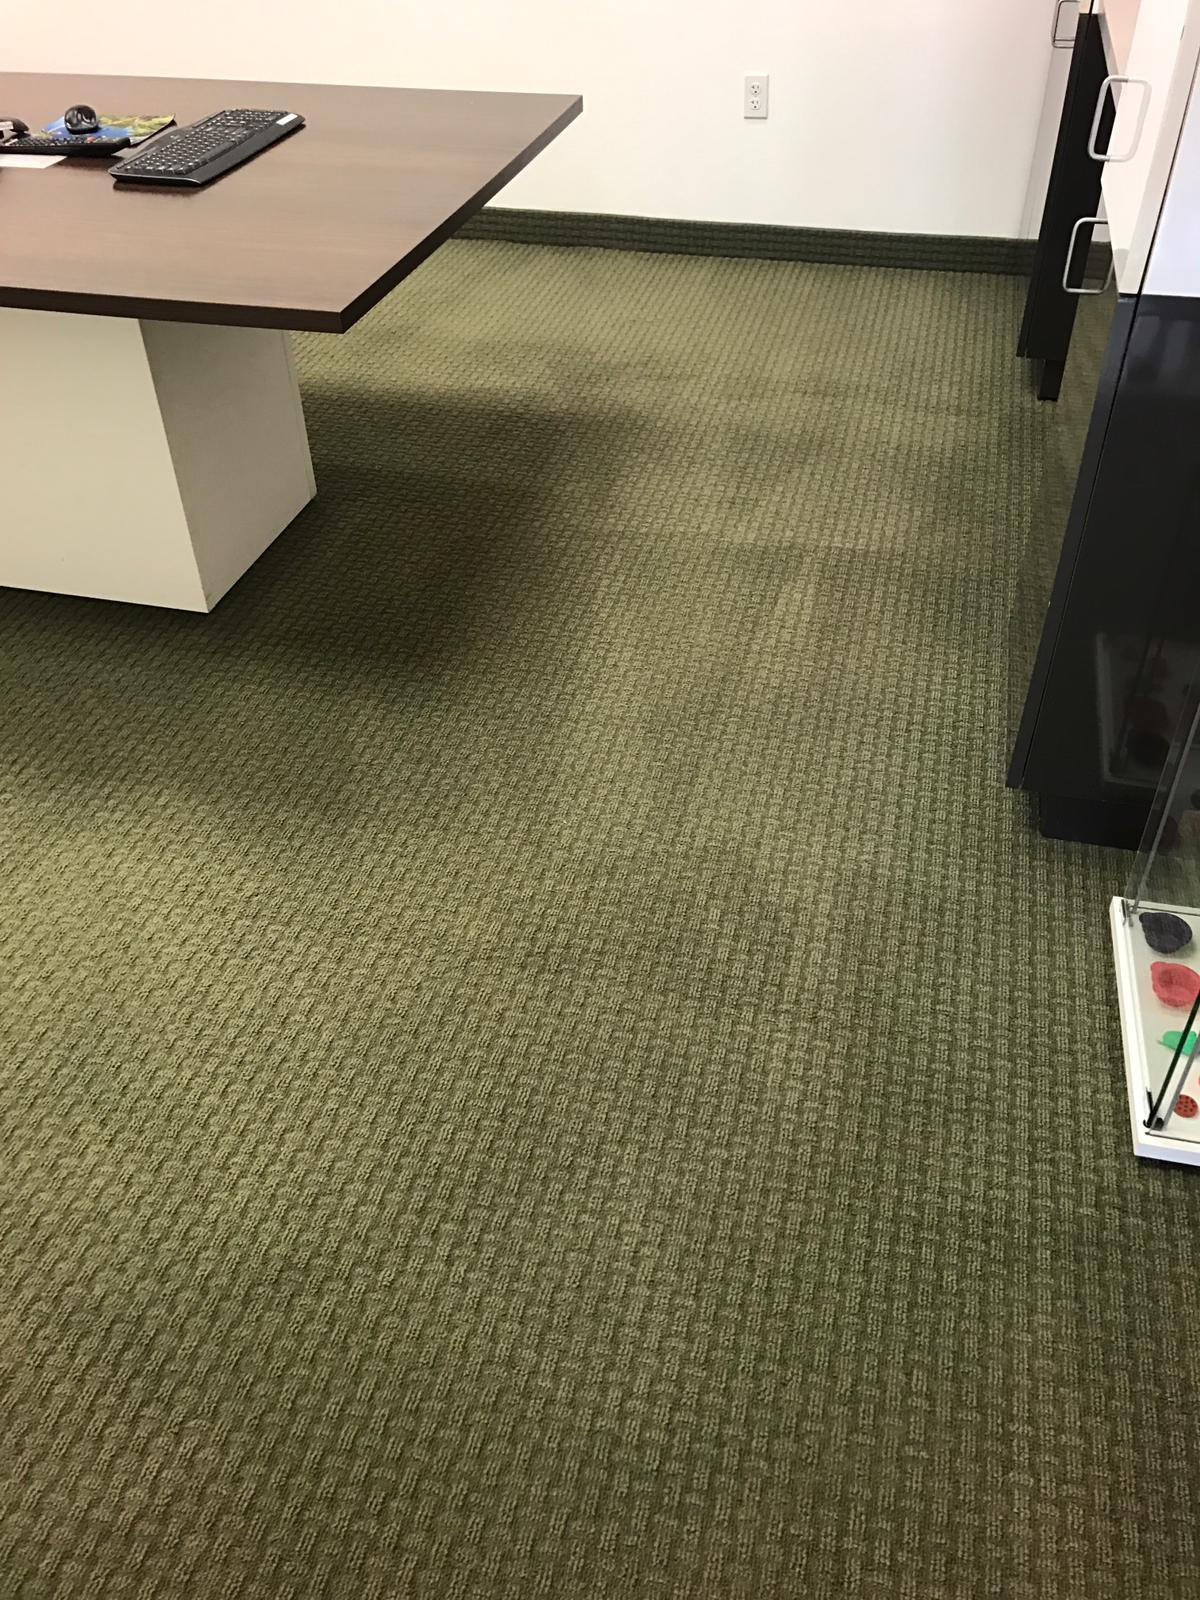 commercial carpet cleaning orange county (3)